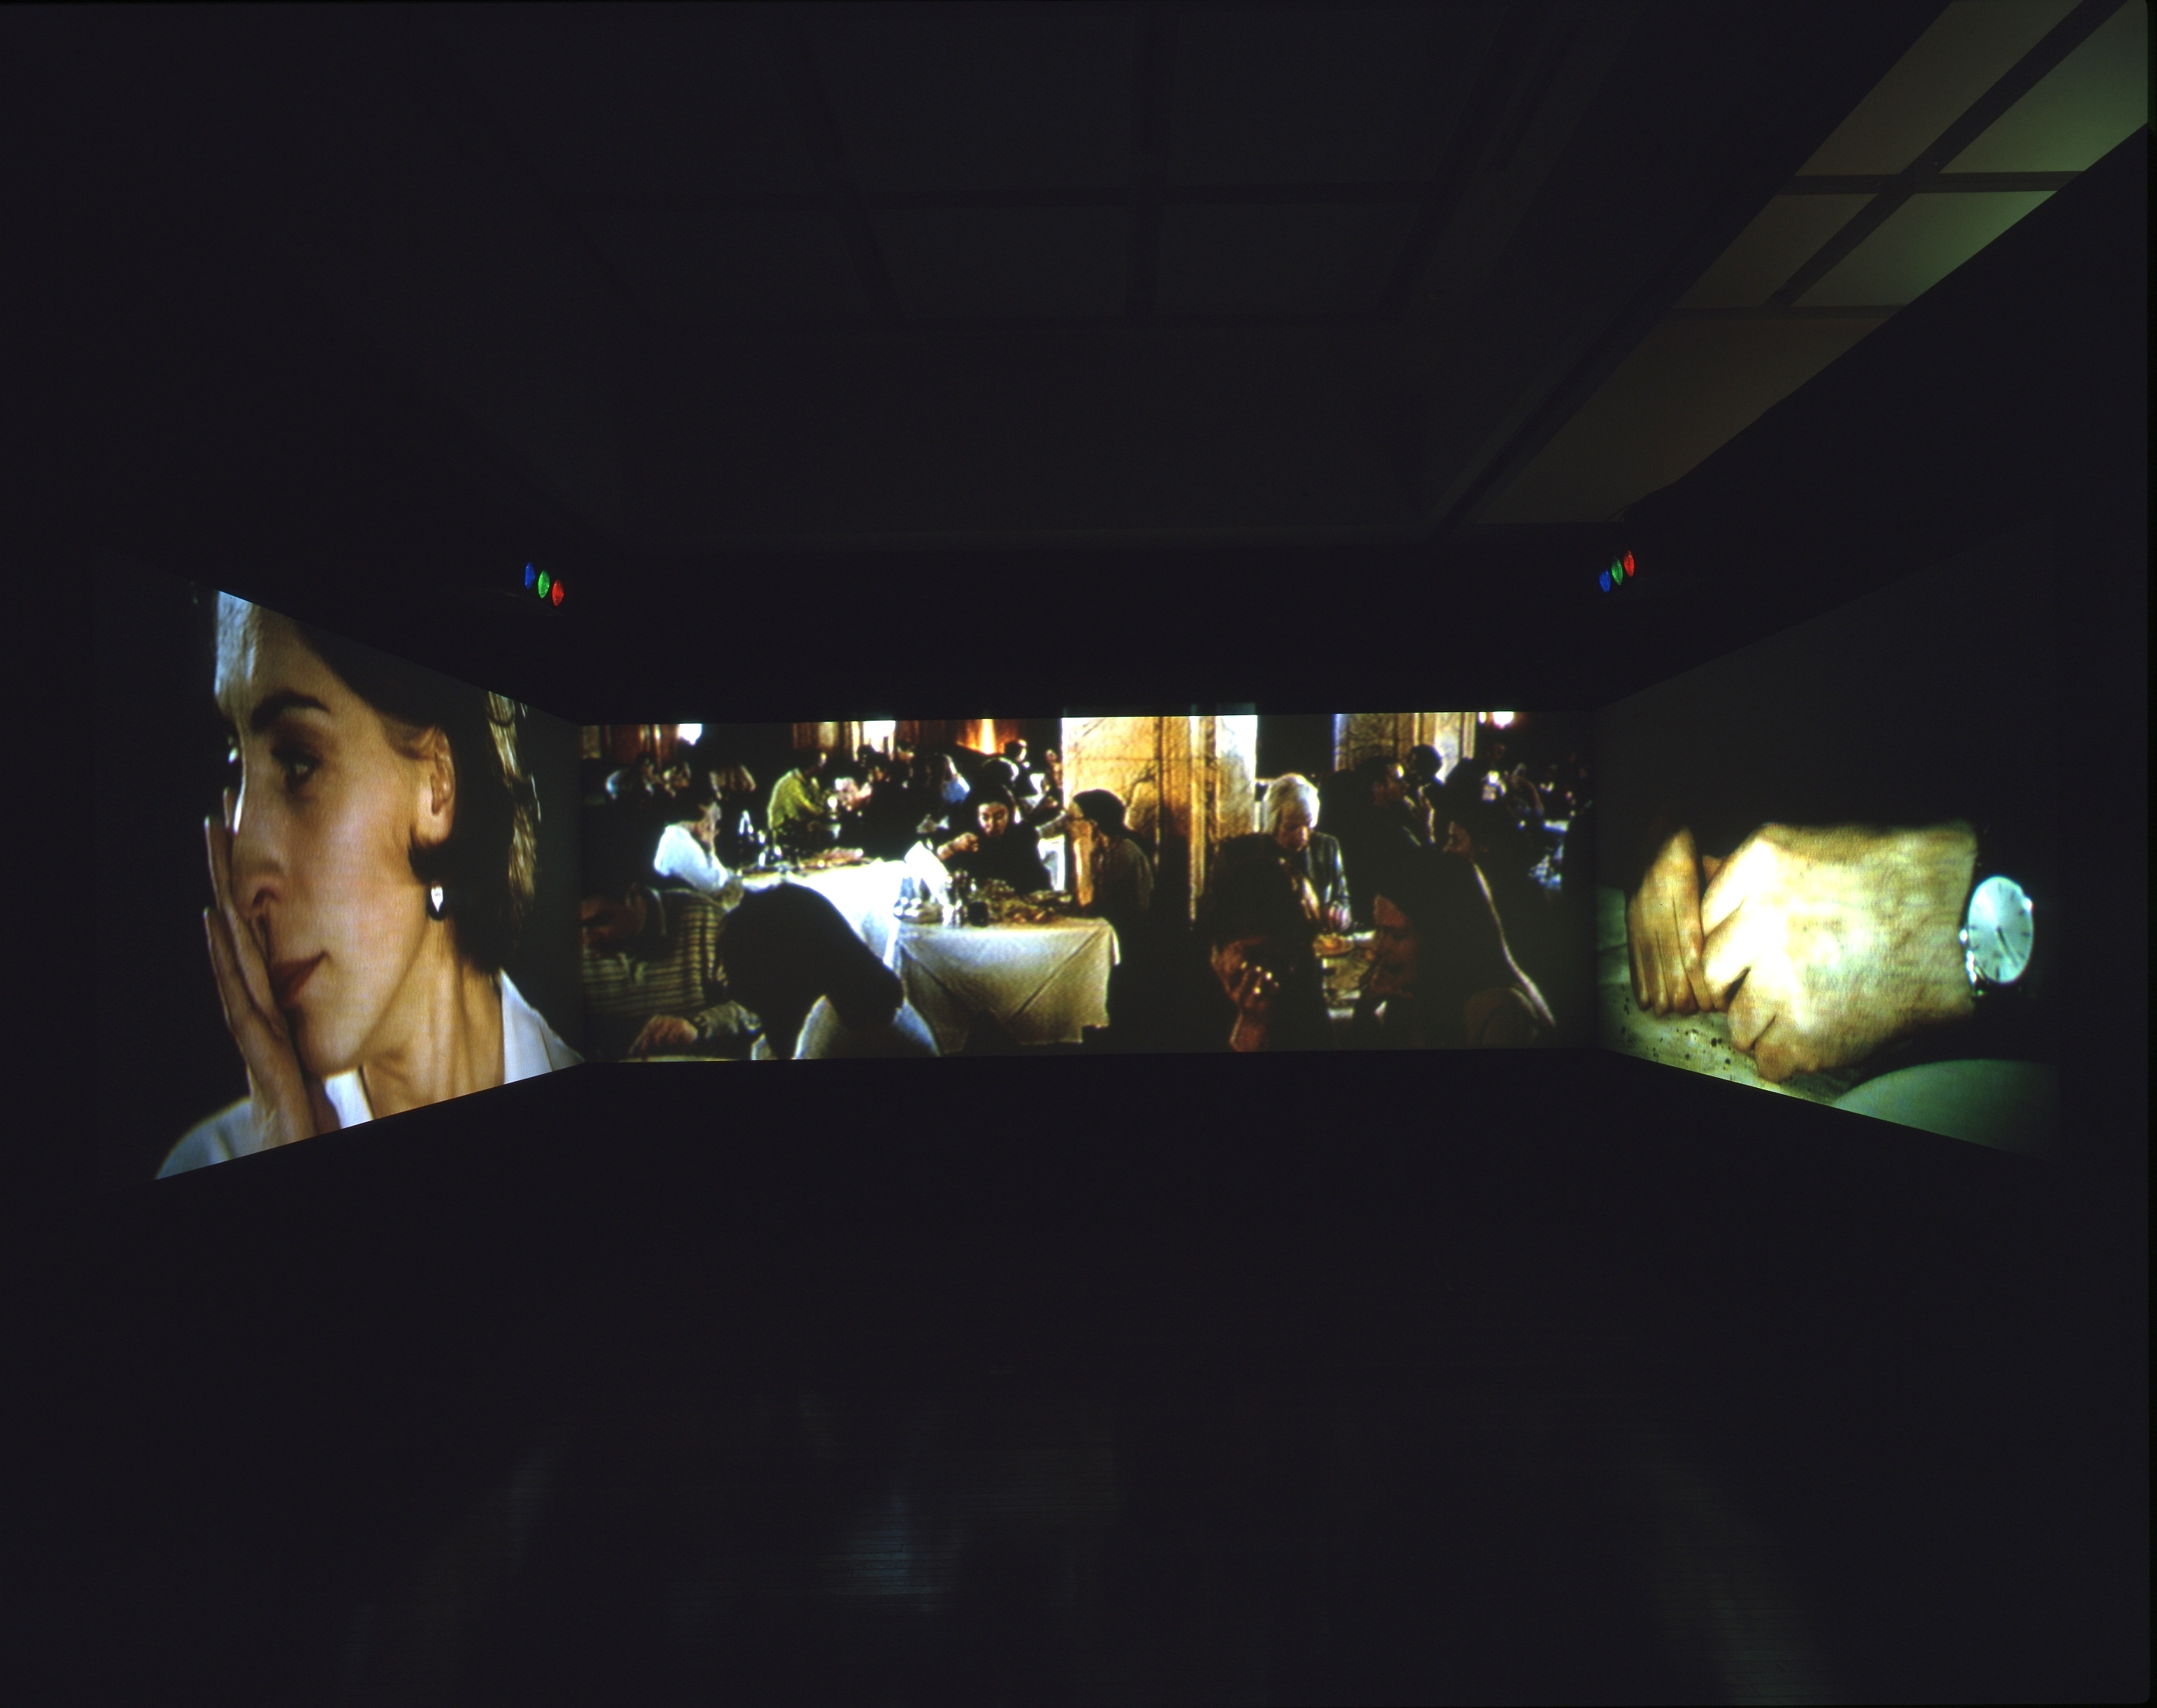 Museum of Contemporary Art, Tokyo, 10 Oct.–13 Dec. 1998, showing Sam Taylor-Wood, <i>Atlantic</i>, 1997, three screen projection with sound, dimensions variable